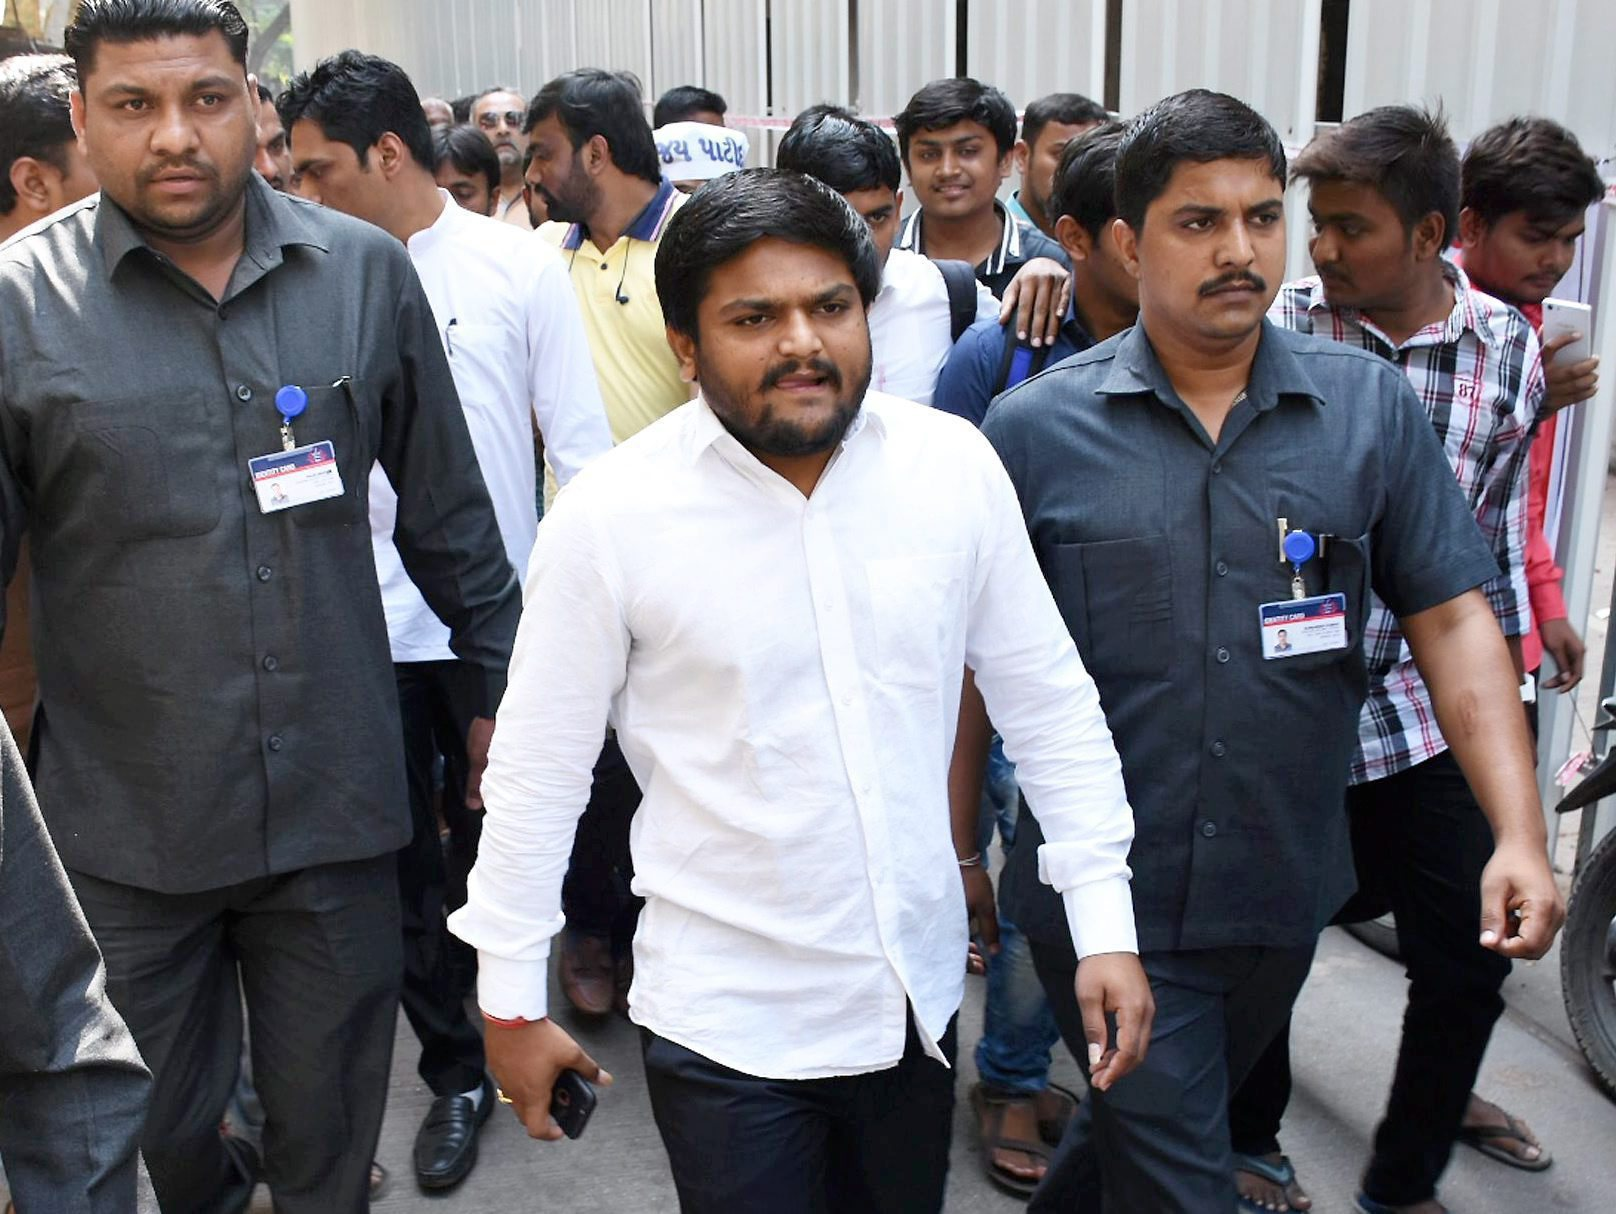 Surat: PAAS convener Hardik Patel as he arrives at a court, in Surat on Friday. PTI Photo(PTI11_3_2017_000195B)